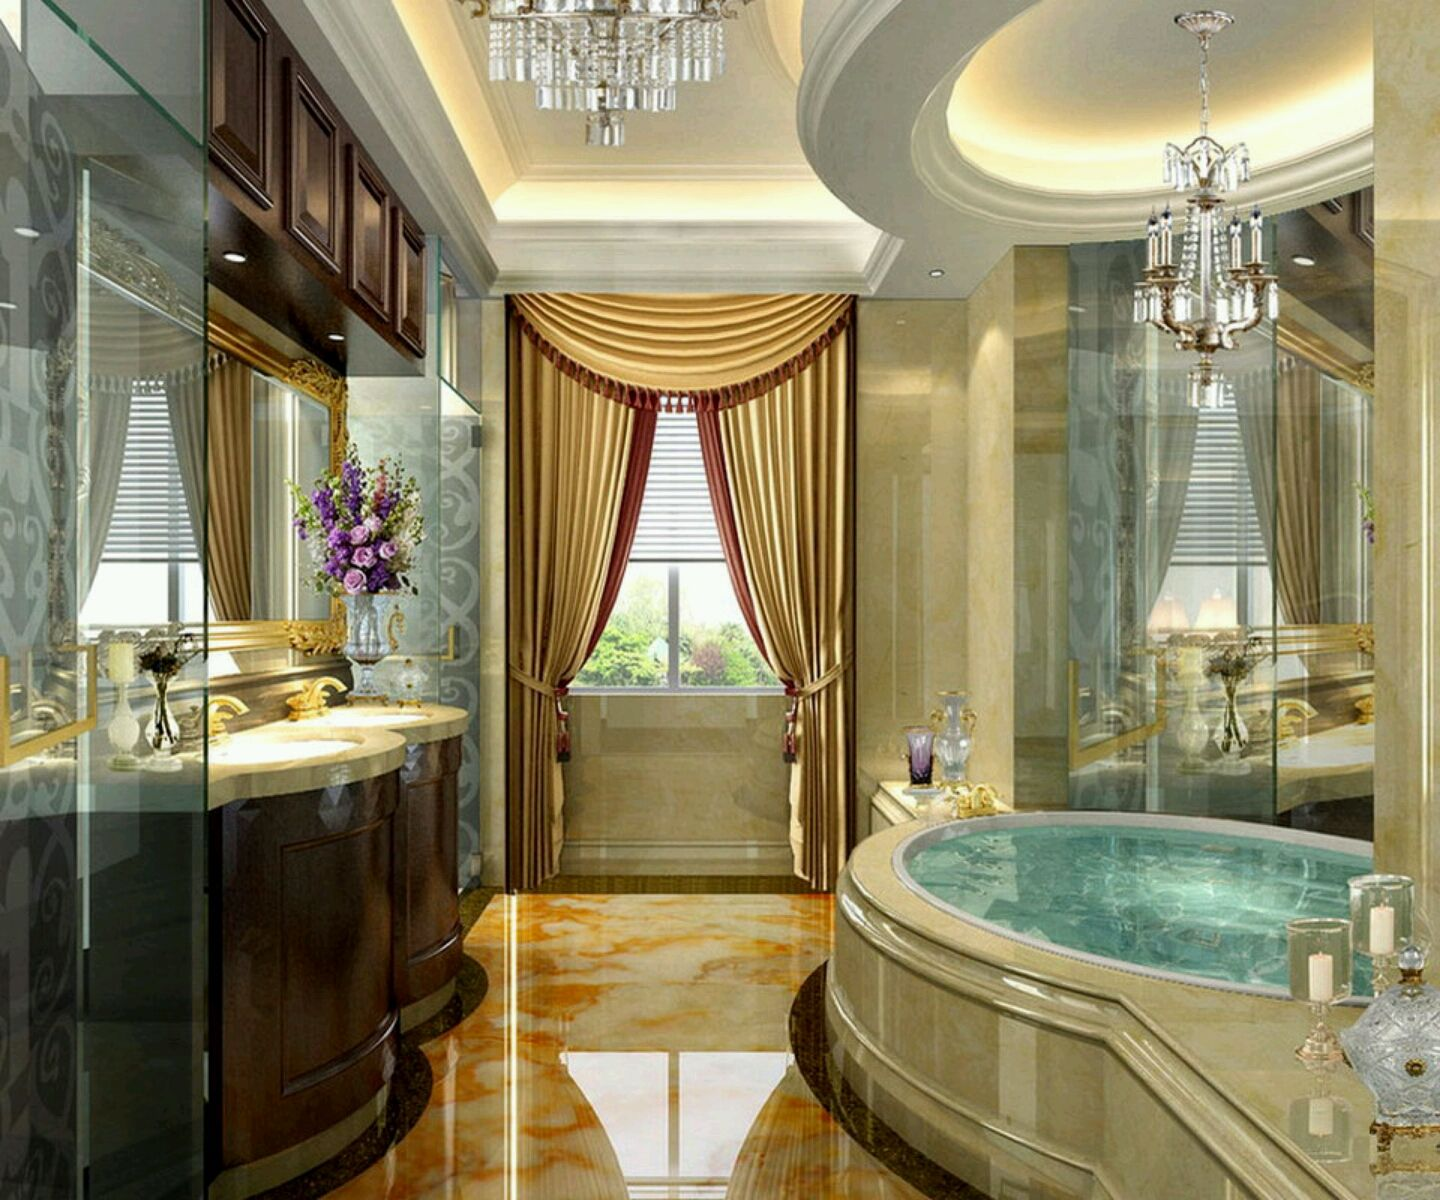 Luxury Bathroom Pictures Prepossessing Luxury Bathroom  Luxury Modern Bathrooms Designs Decoration Ideas Decorating Design